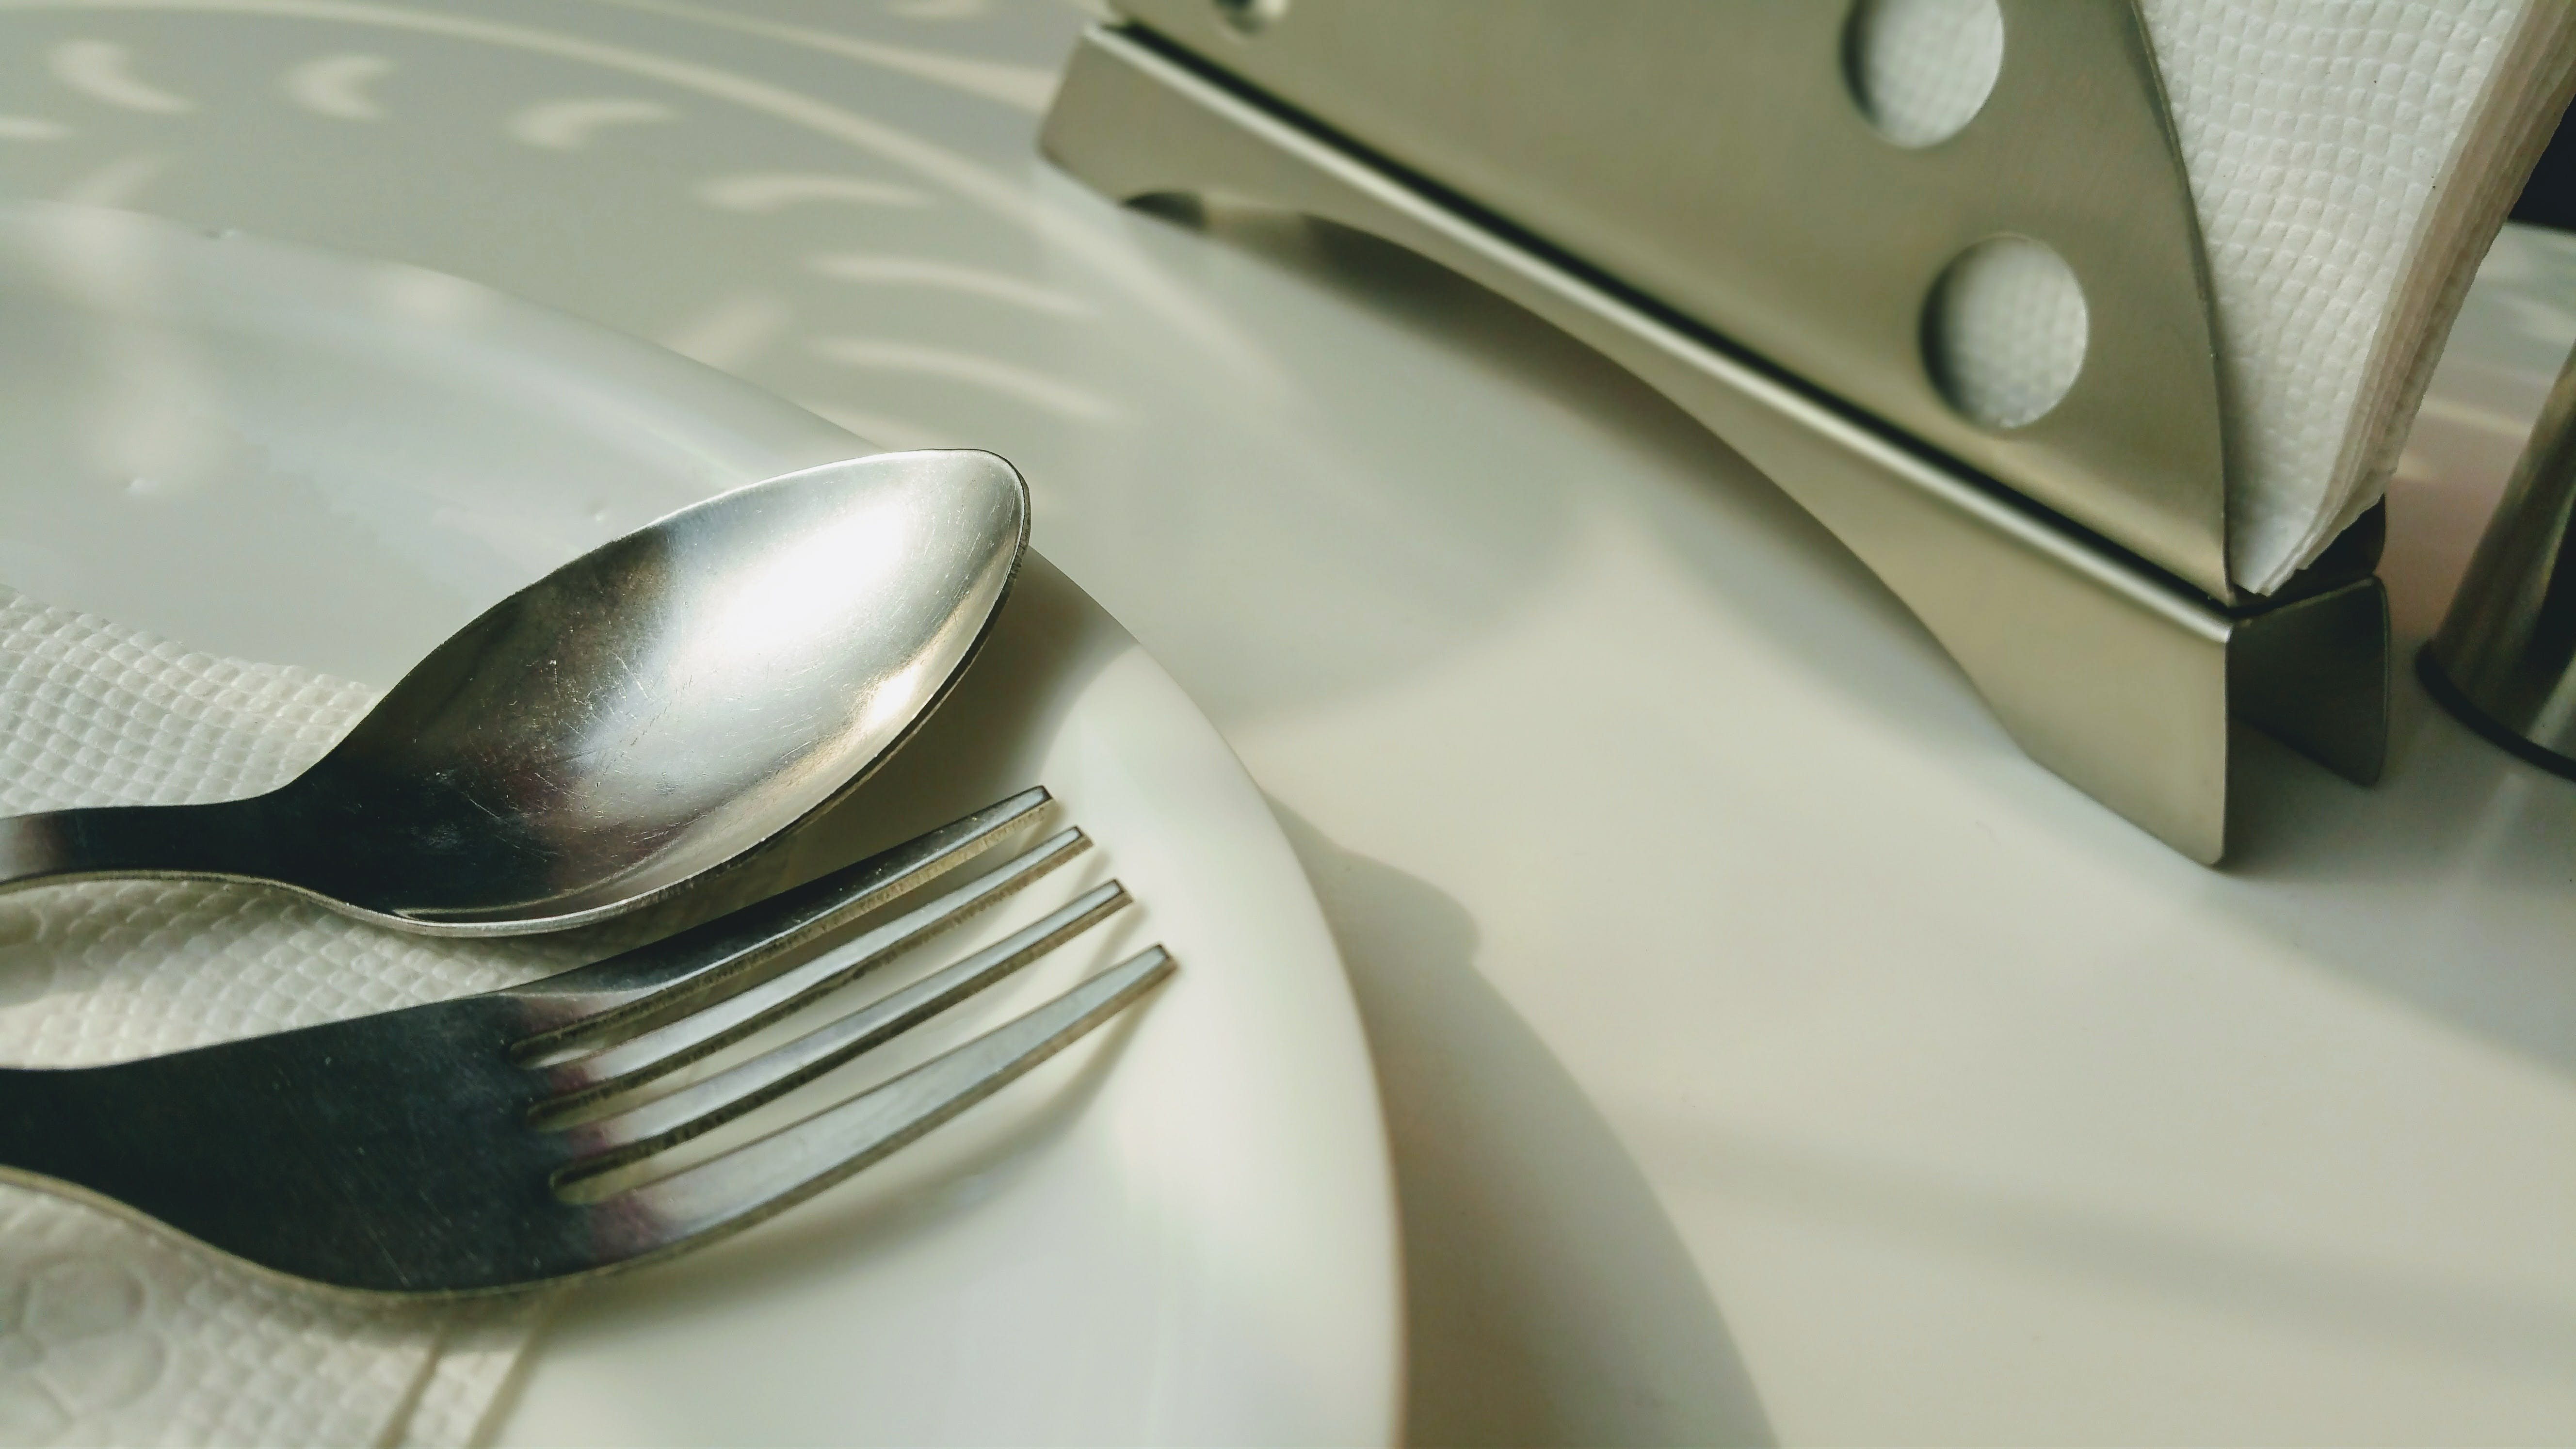 Free stock photo of cutlery, day, grey, holder